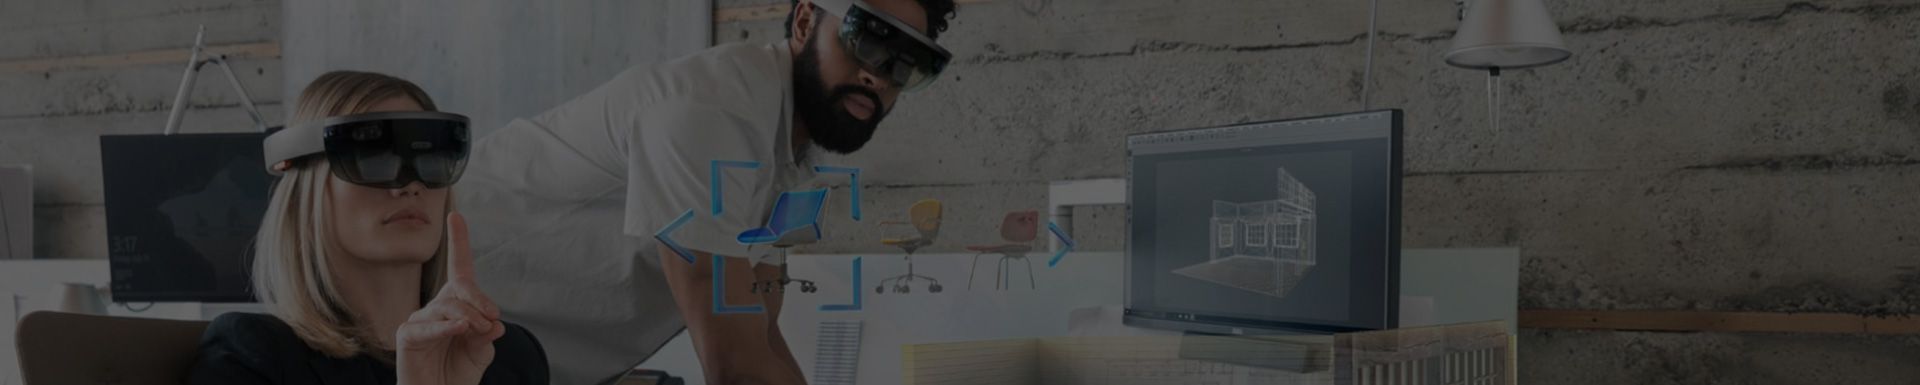 Muted photograph of two people wearing headsets and experiencing mixed reality